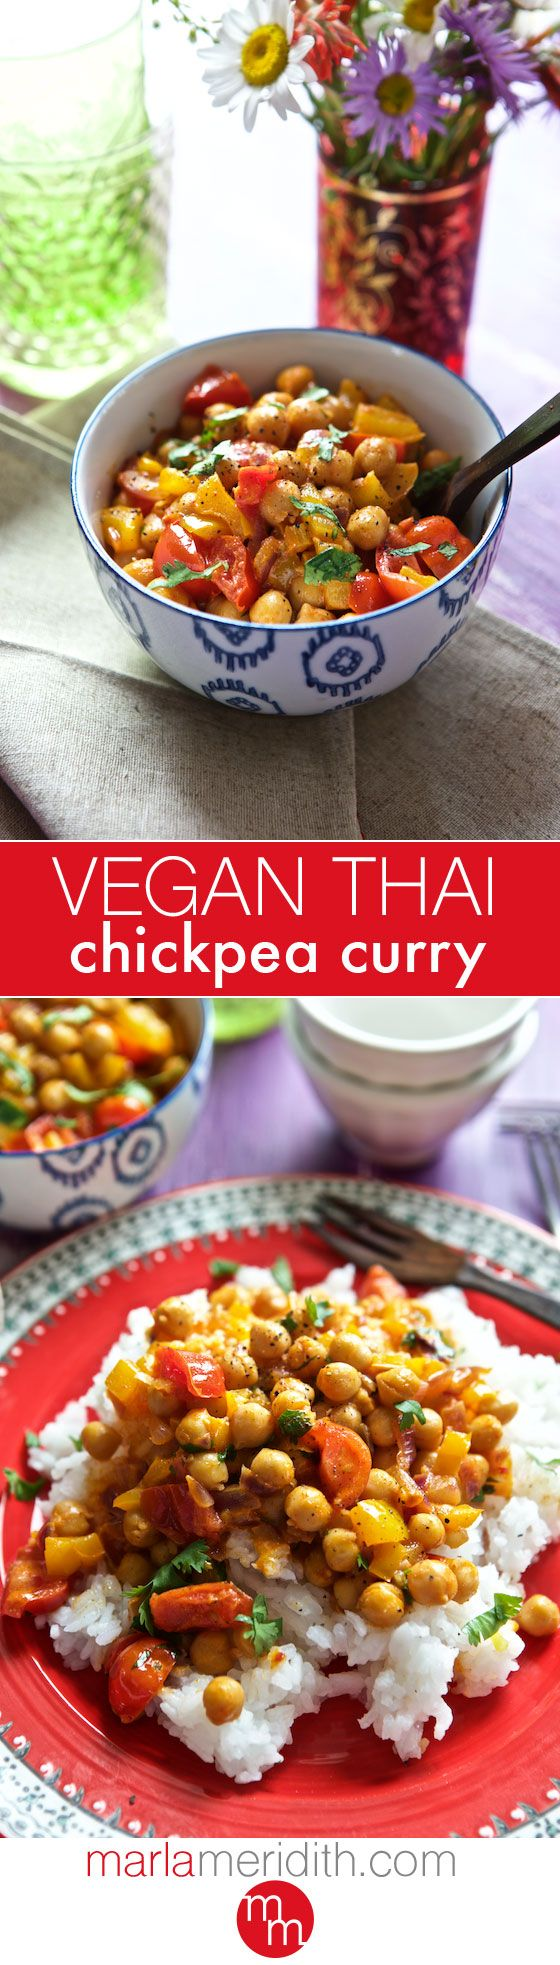 Vegan Thai Chickpea Curry | MarlaMeridith.com ( @marlameridith )